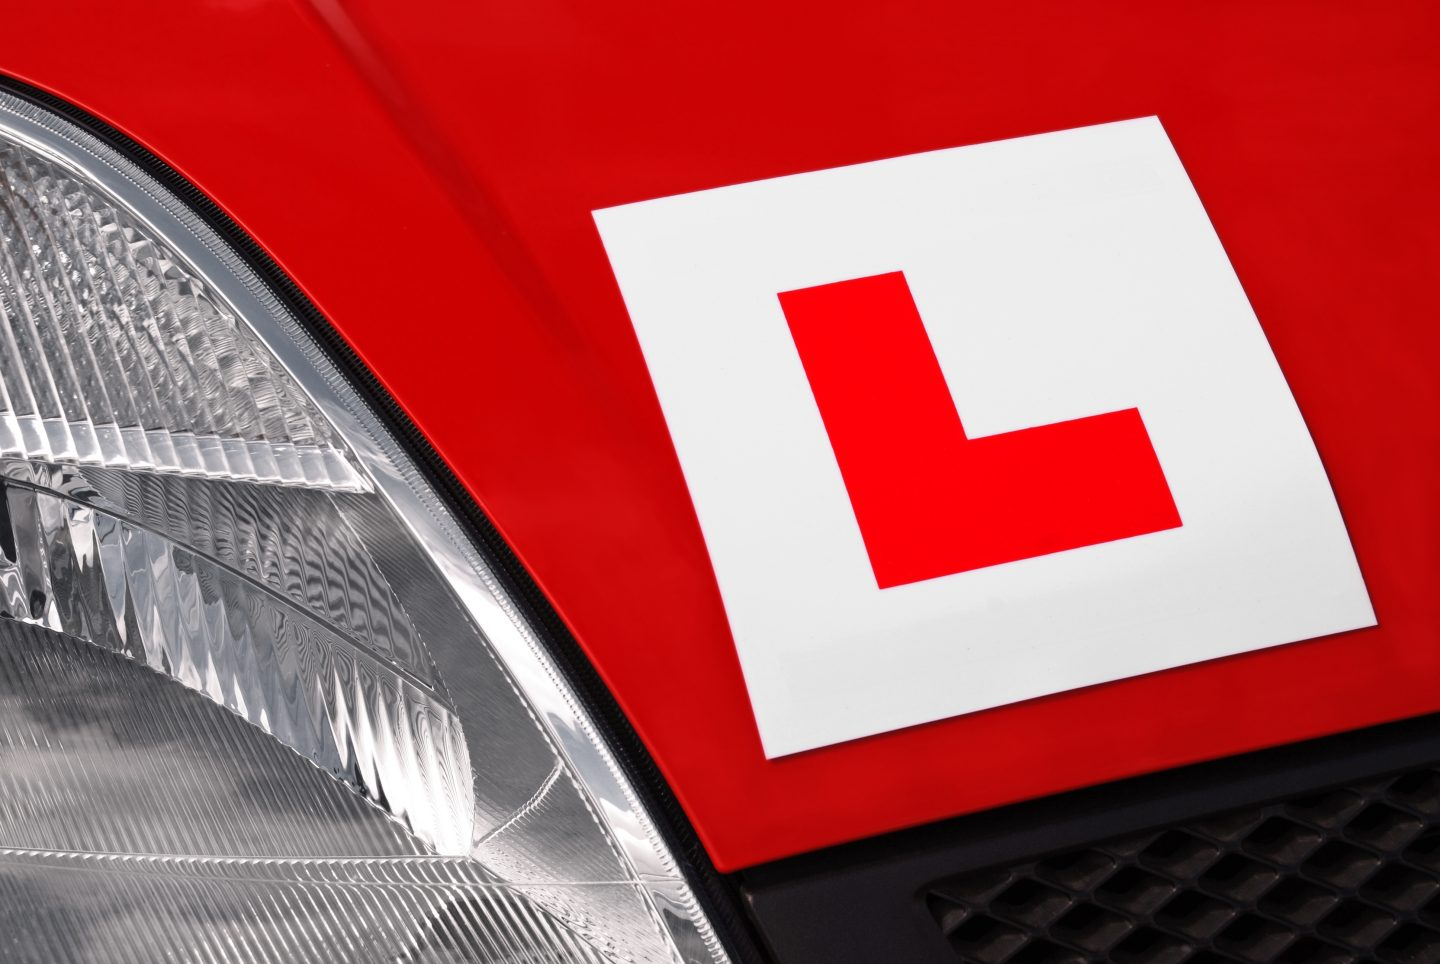 L-plate learner driver